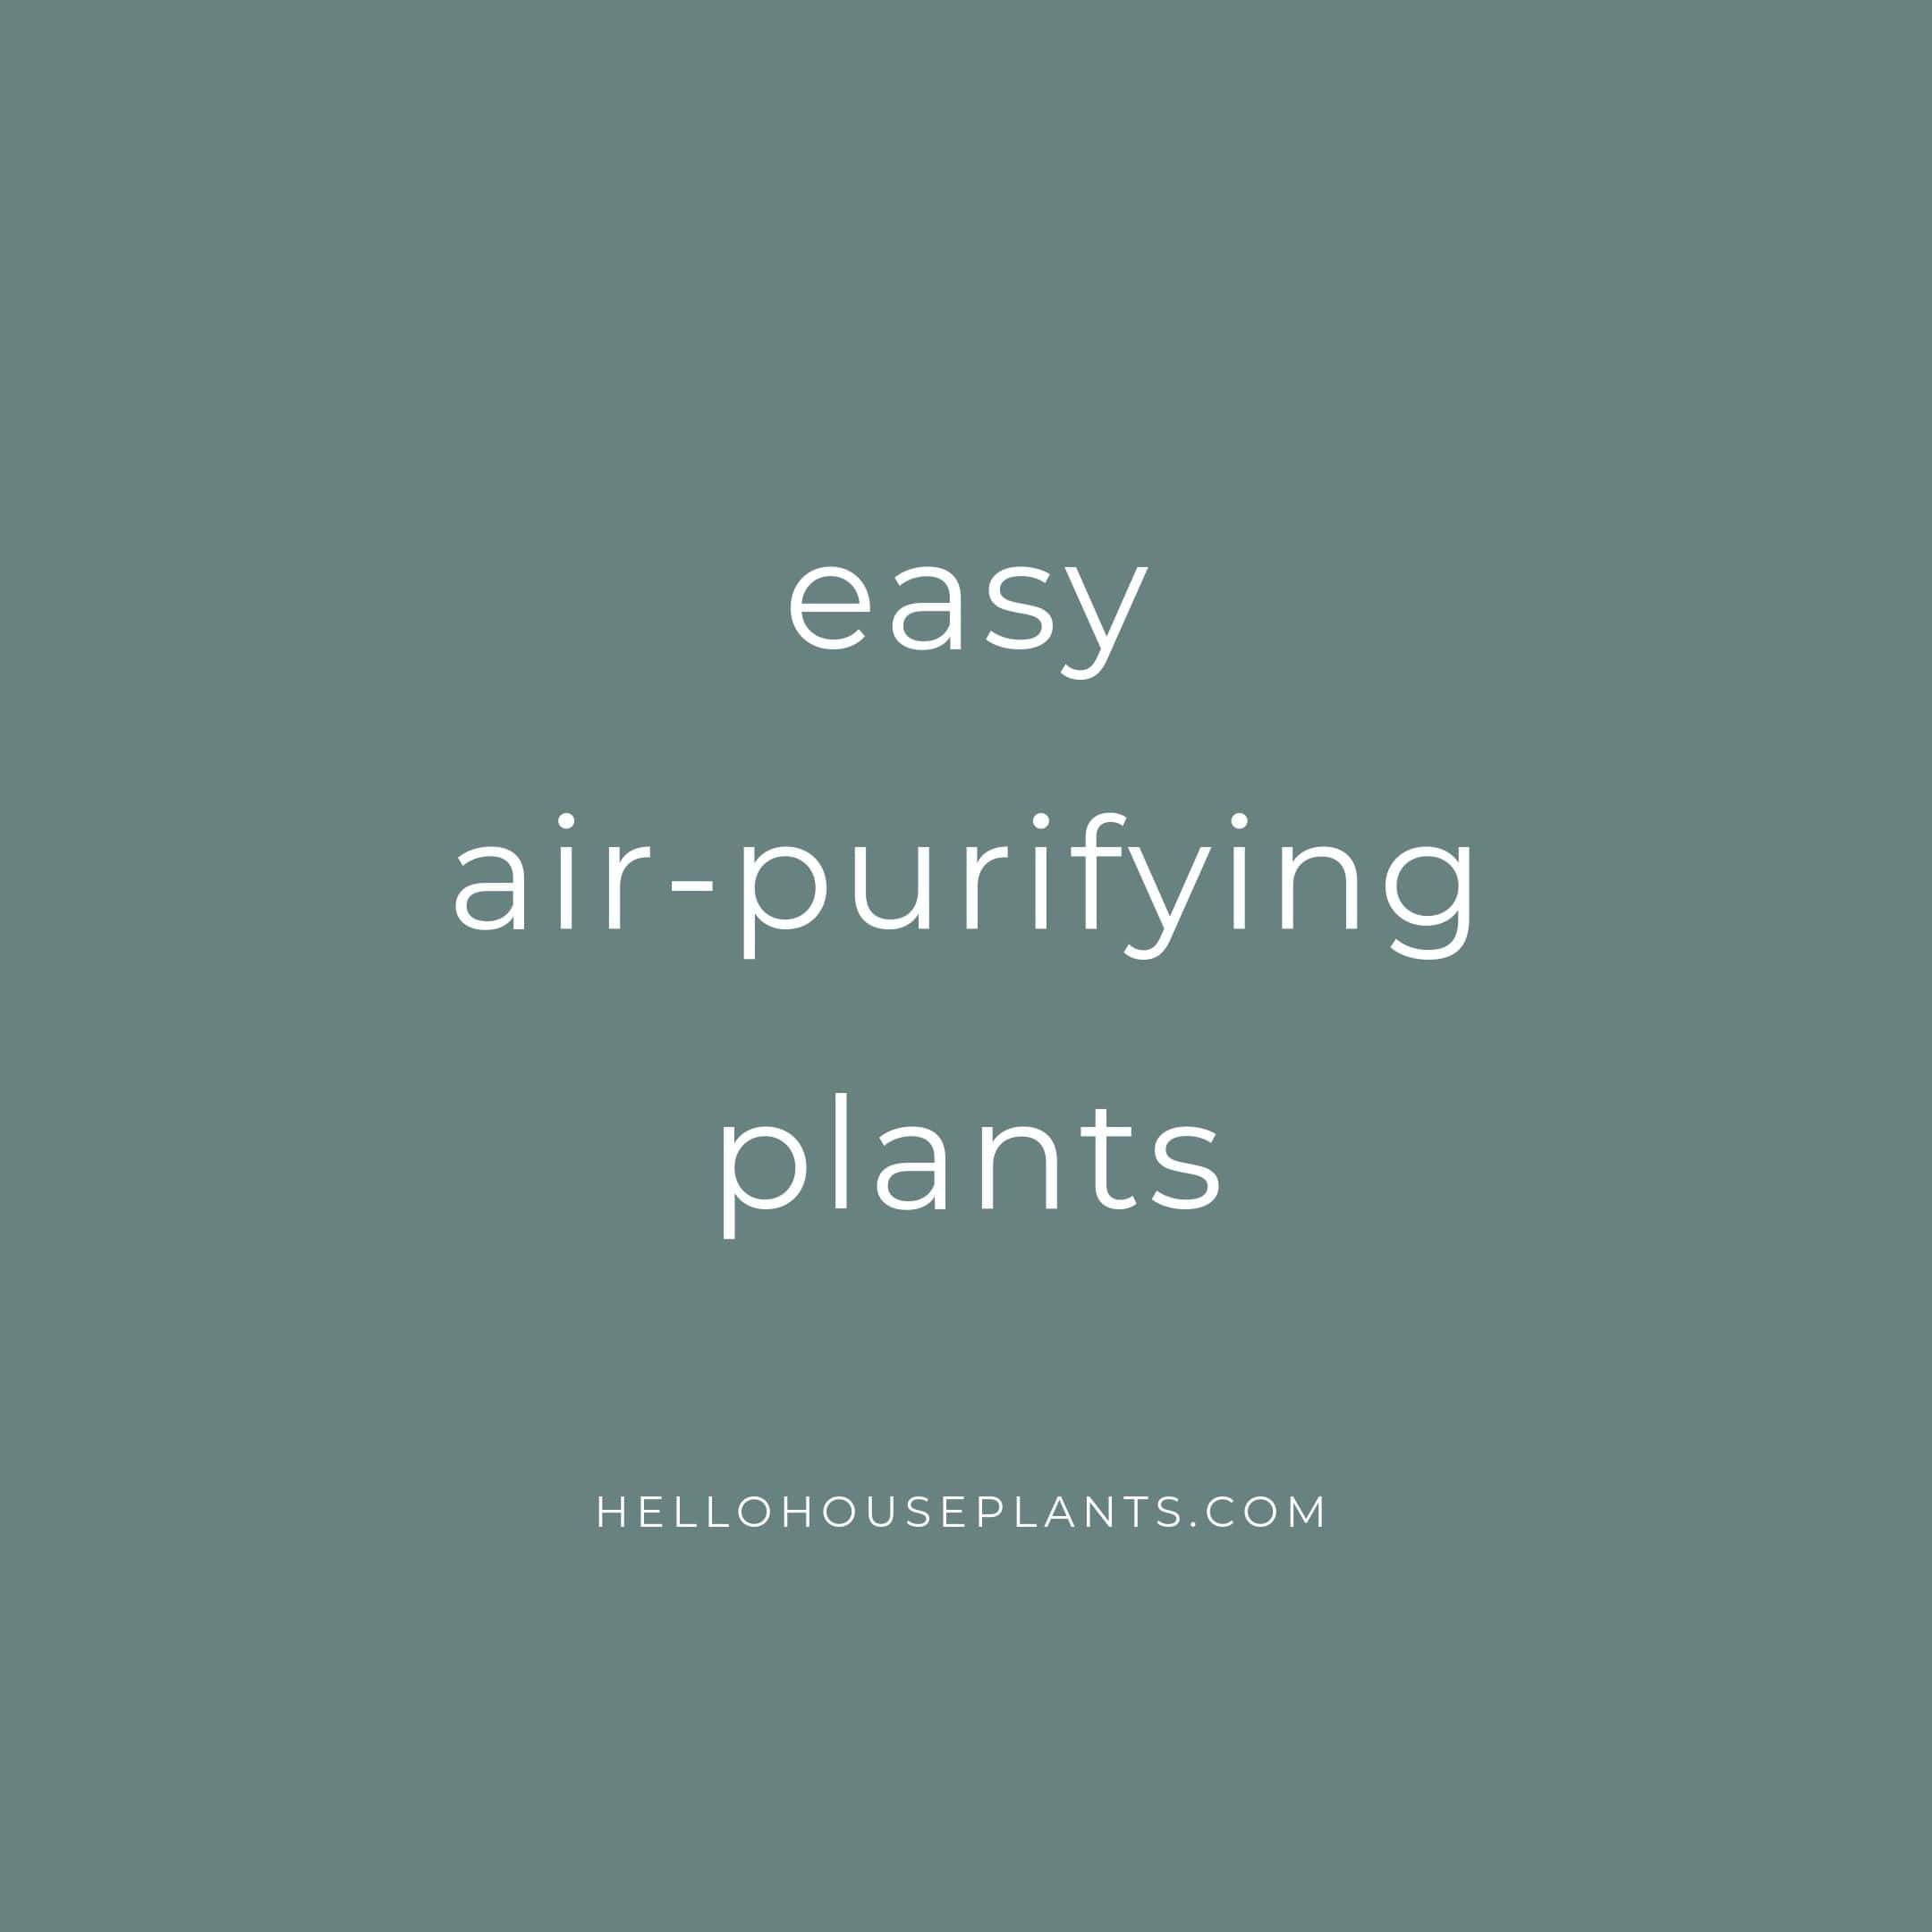 easy air purifying plants